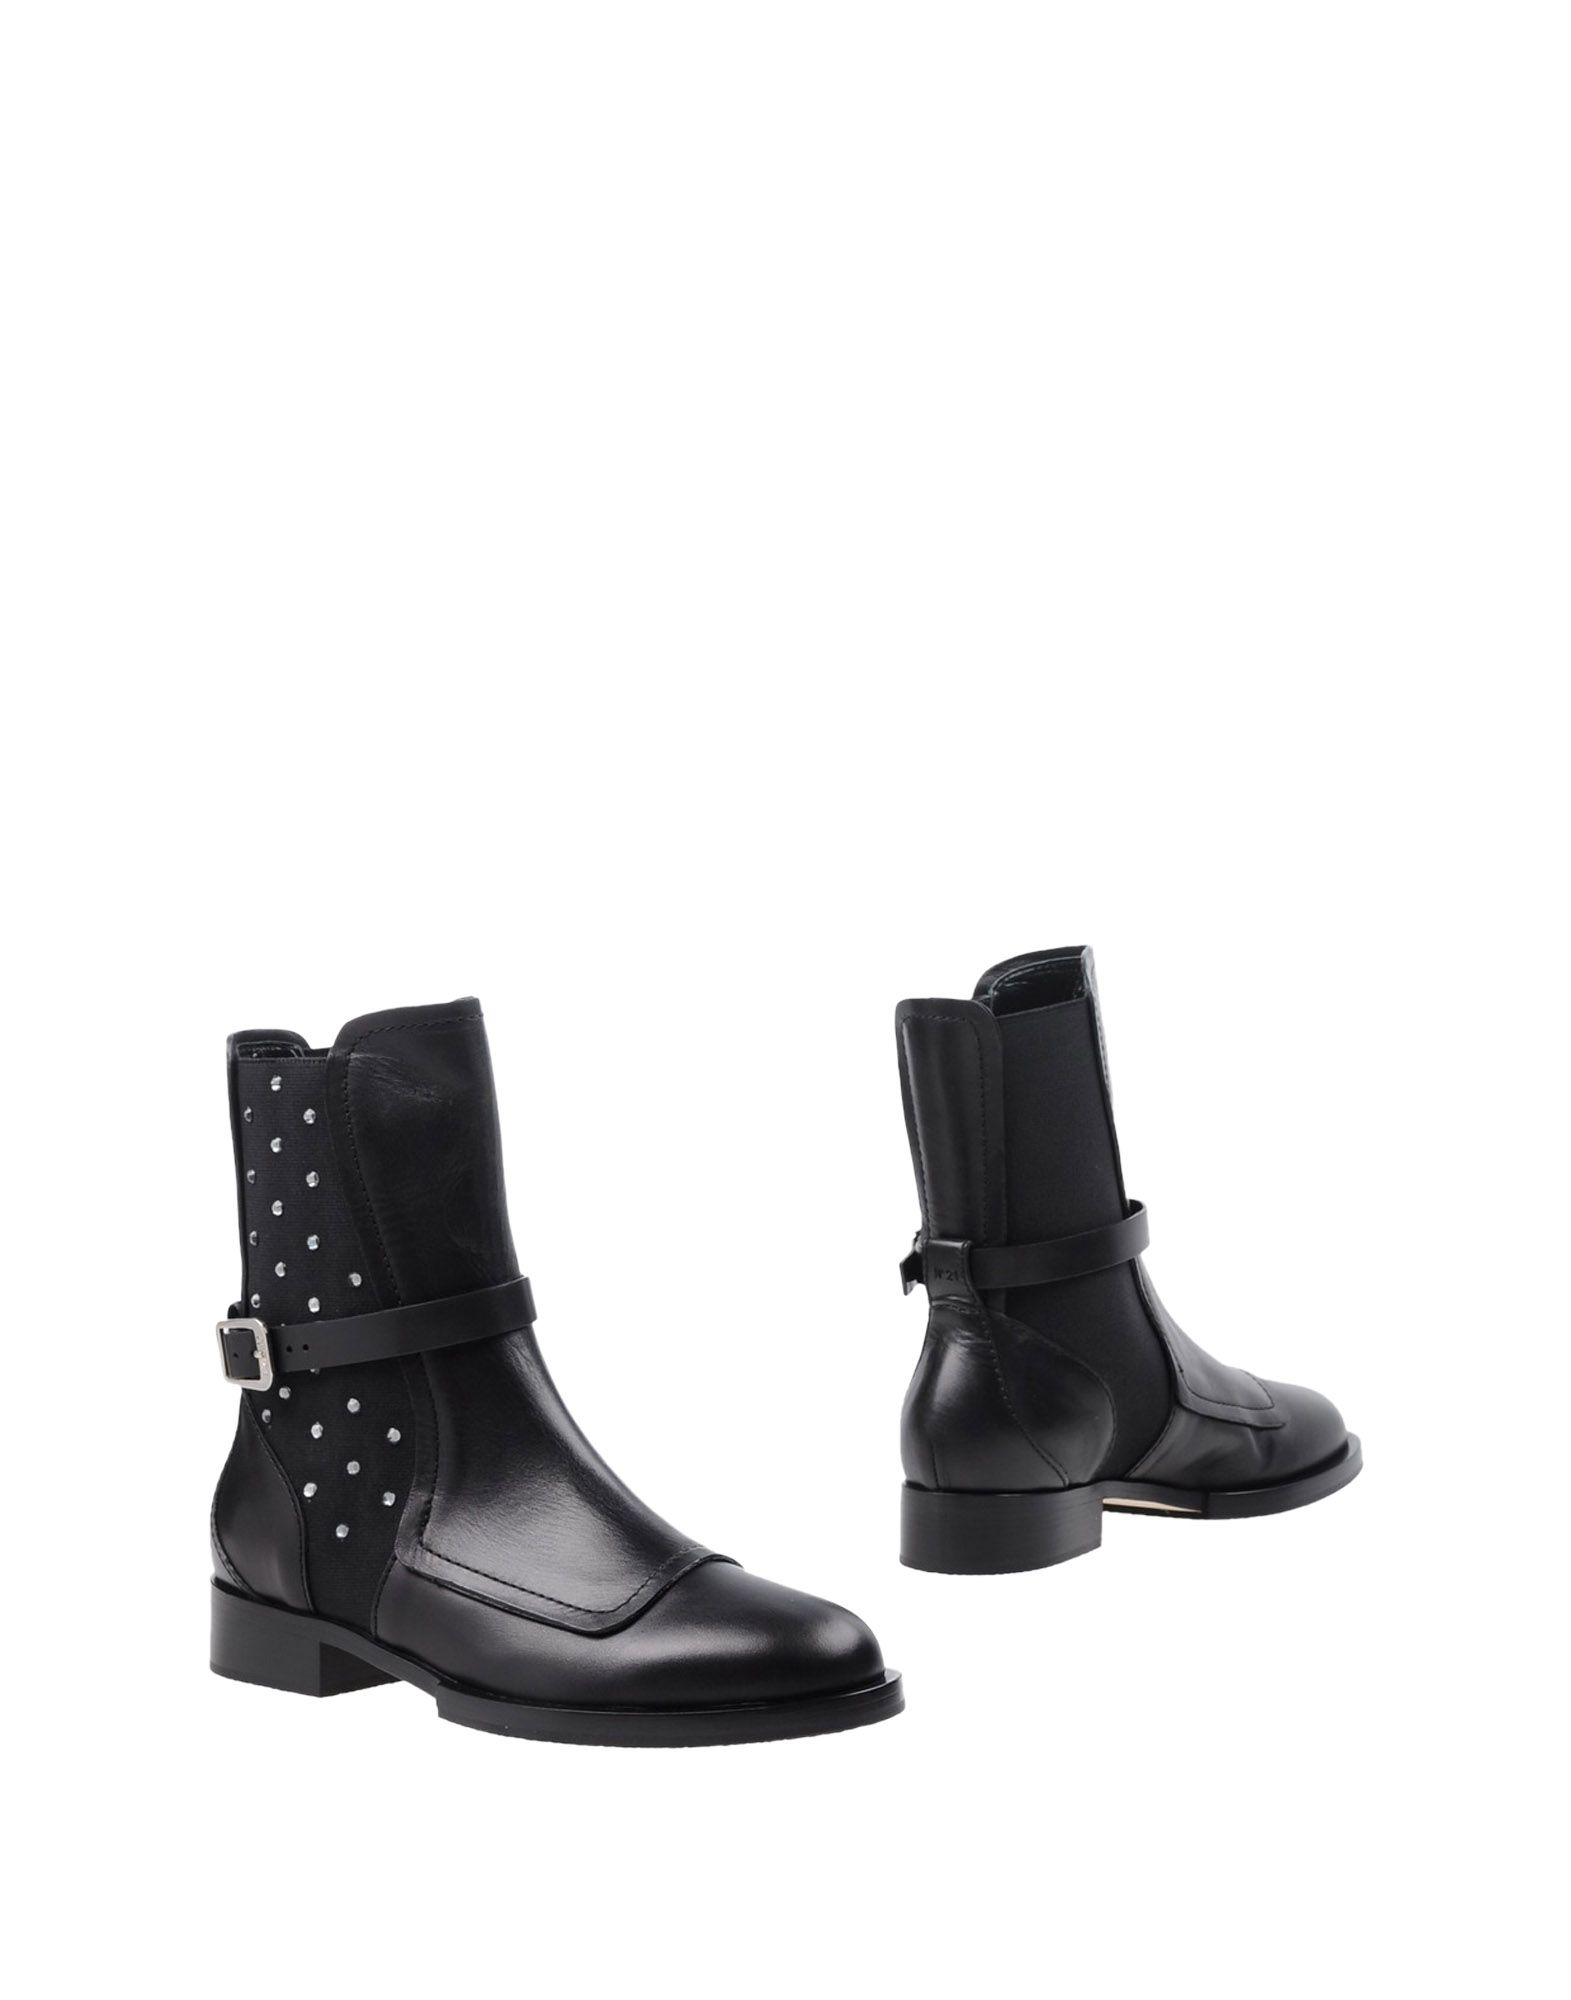 N° Women 21 Ankle Boot - Women N° N° 21 Ankle Boots online on  Australia - 11365373DQ 66e359